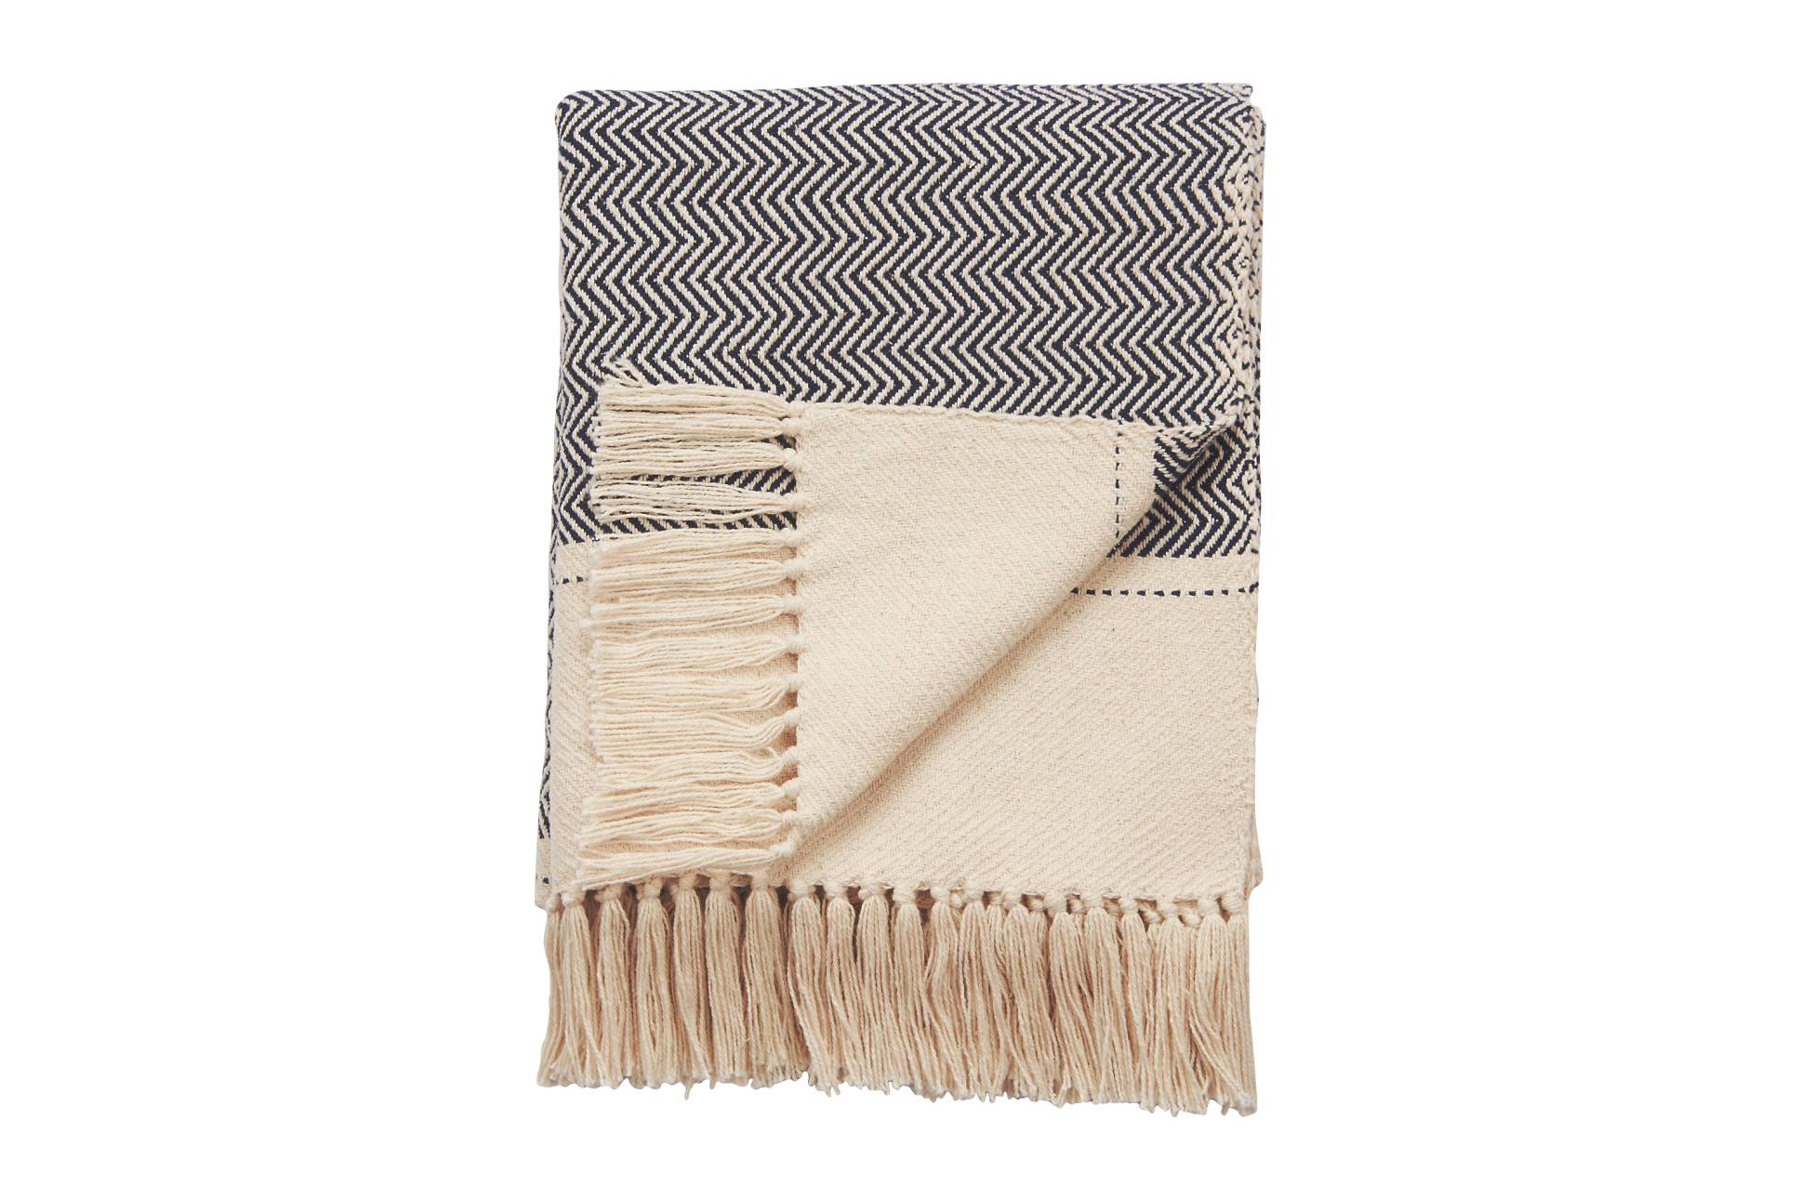 Spirit Hand Loomed Throw Blanket